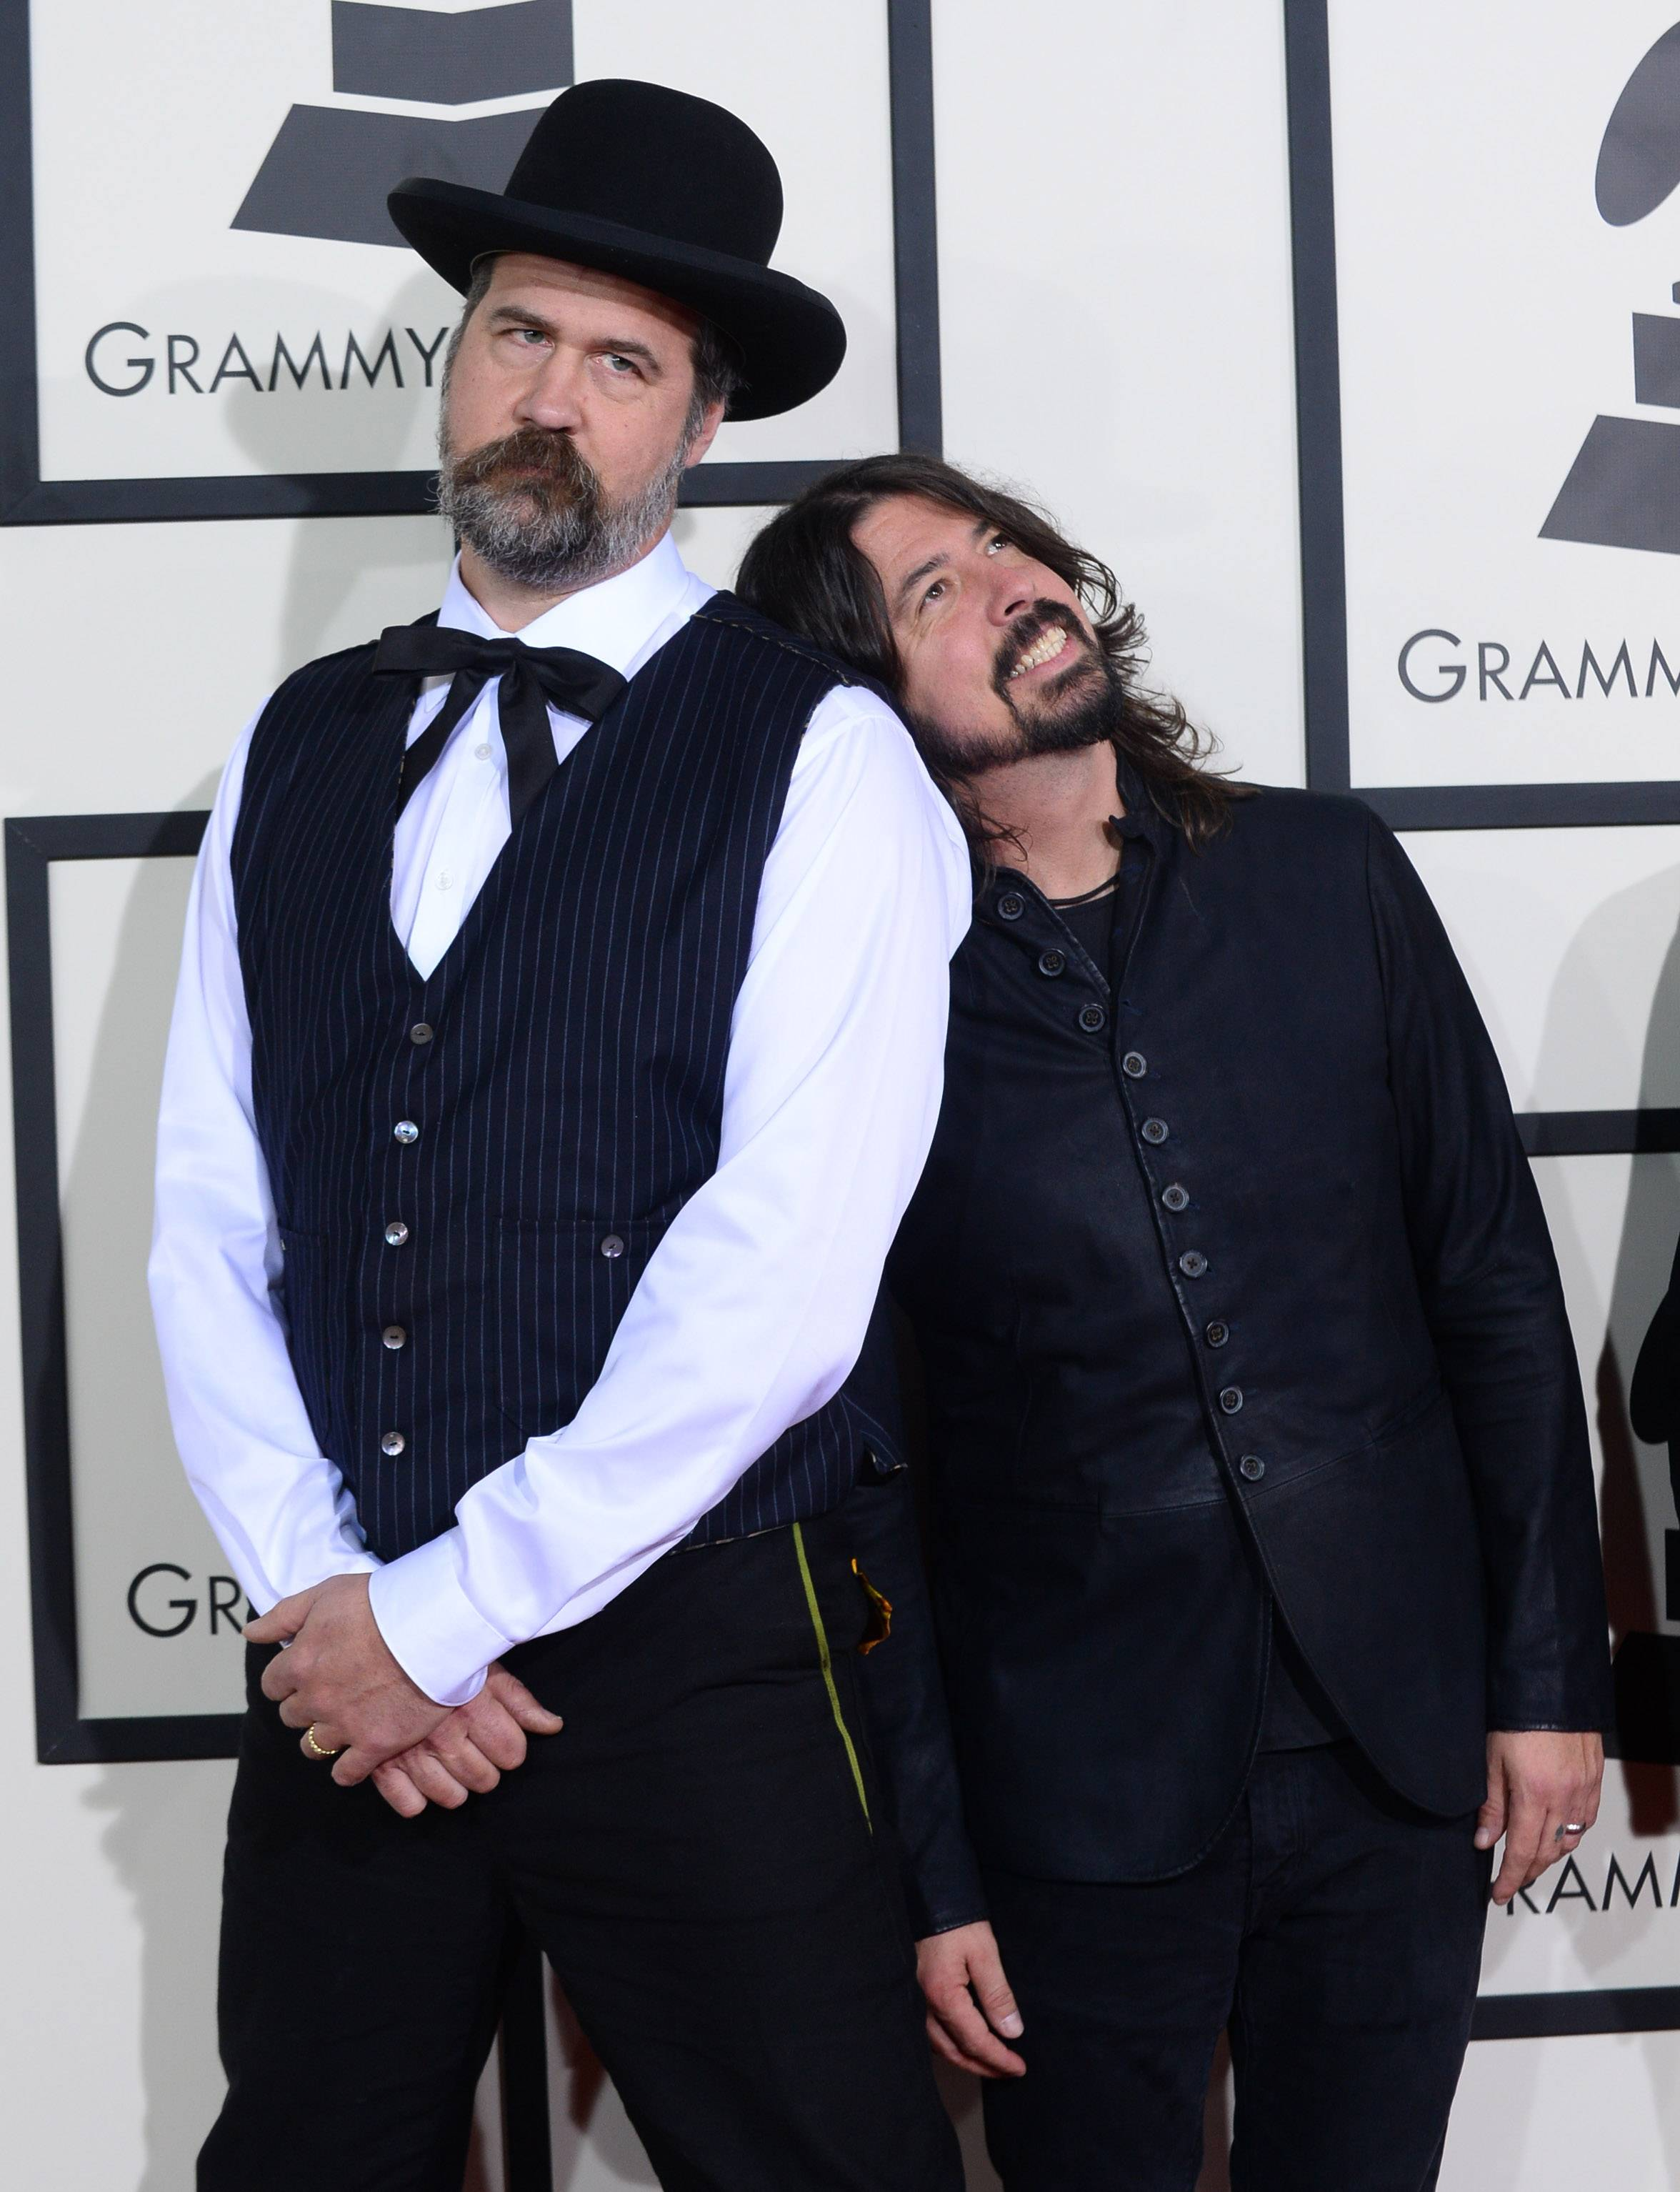 Krist Novoselic, left, and Dave Grohl have a little fun while walking the red carpet at the Grammys.